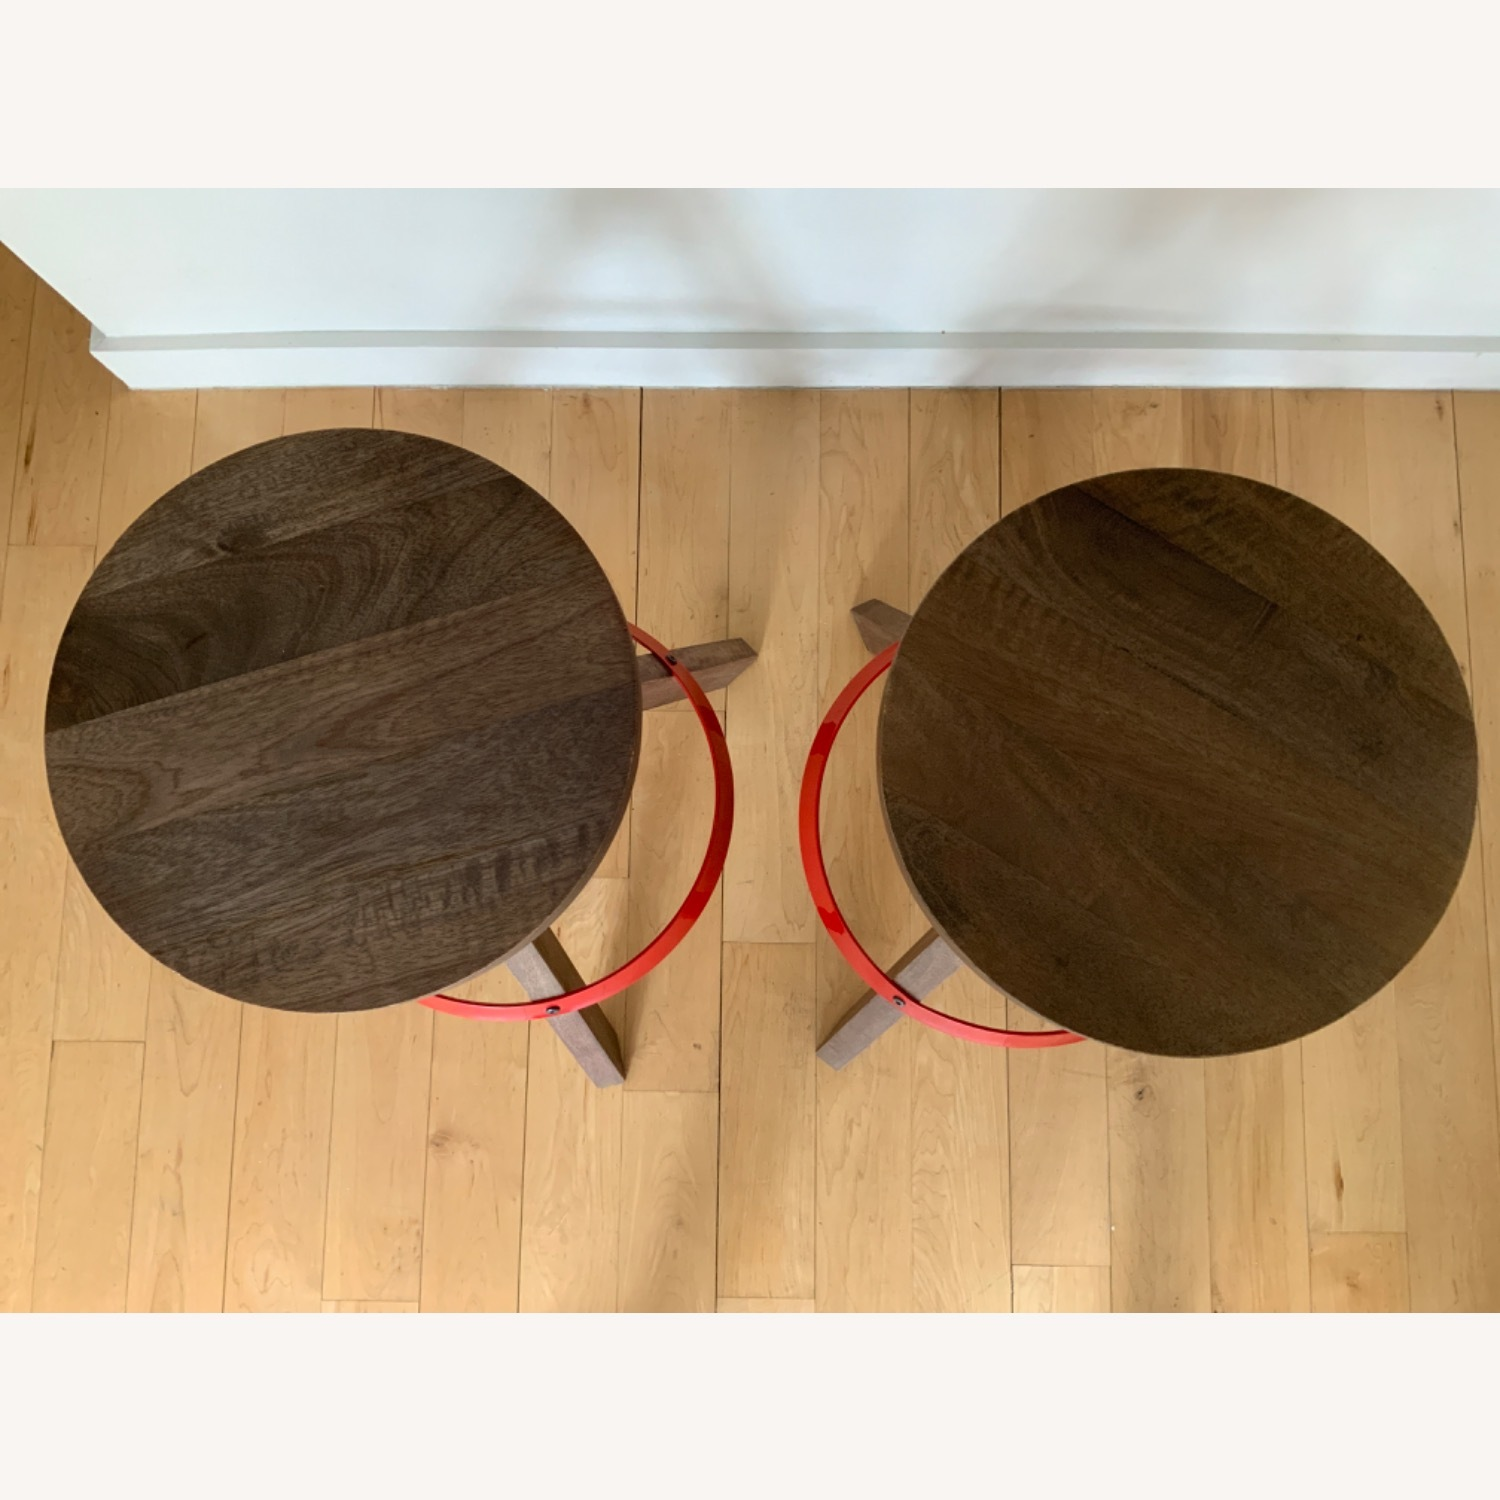 CB2 Height Adjustable Counter Stools - image-2